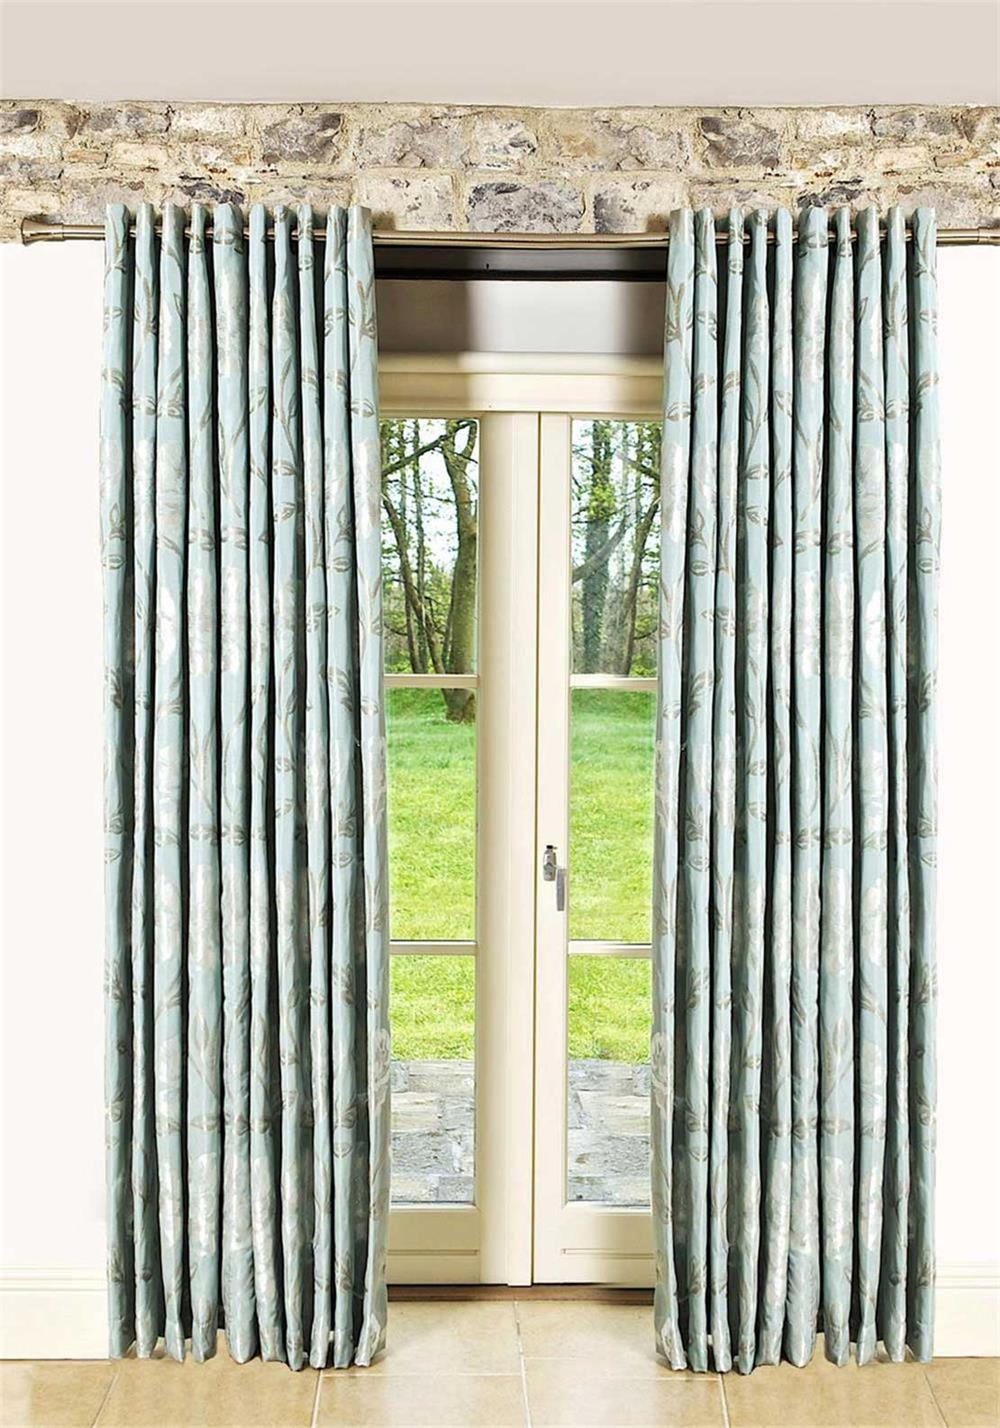 Scatterbox Maisey Eyelet Fully Lined Ready-Made Curtains, Duck Egg Blue